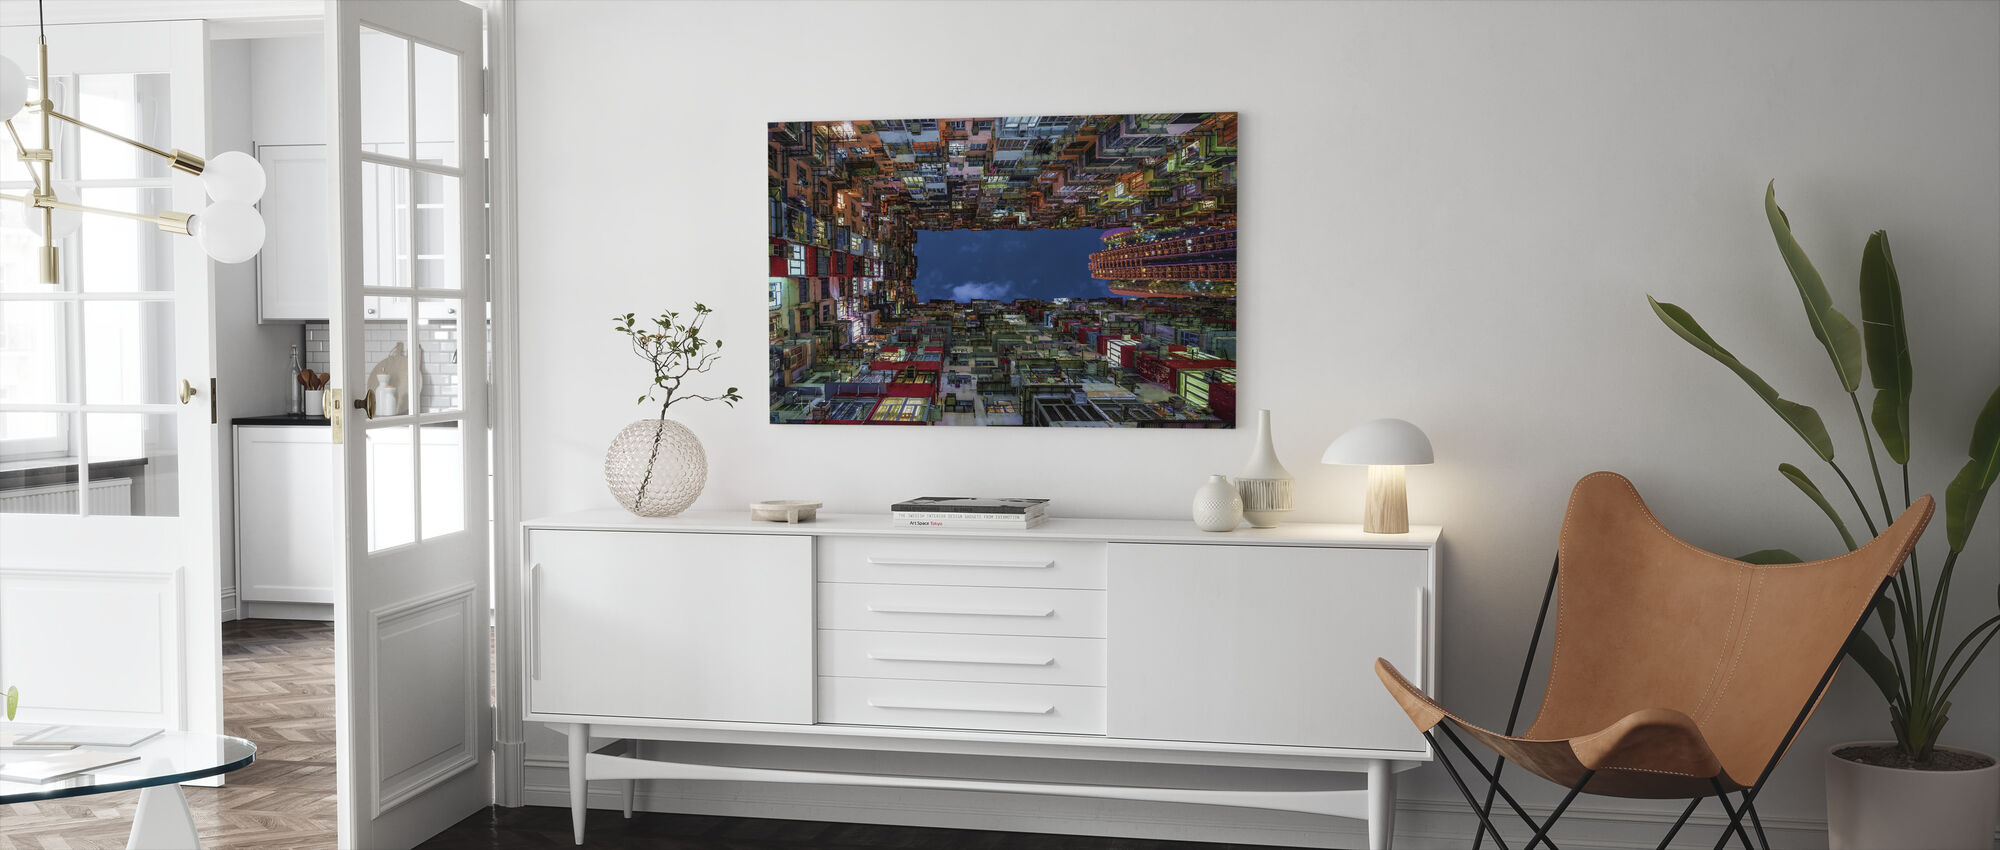 Uplift - Canvas print - Living Room